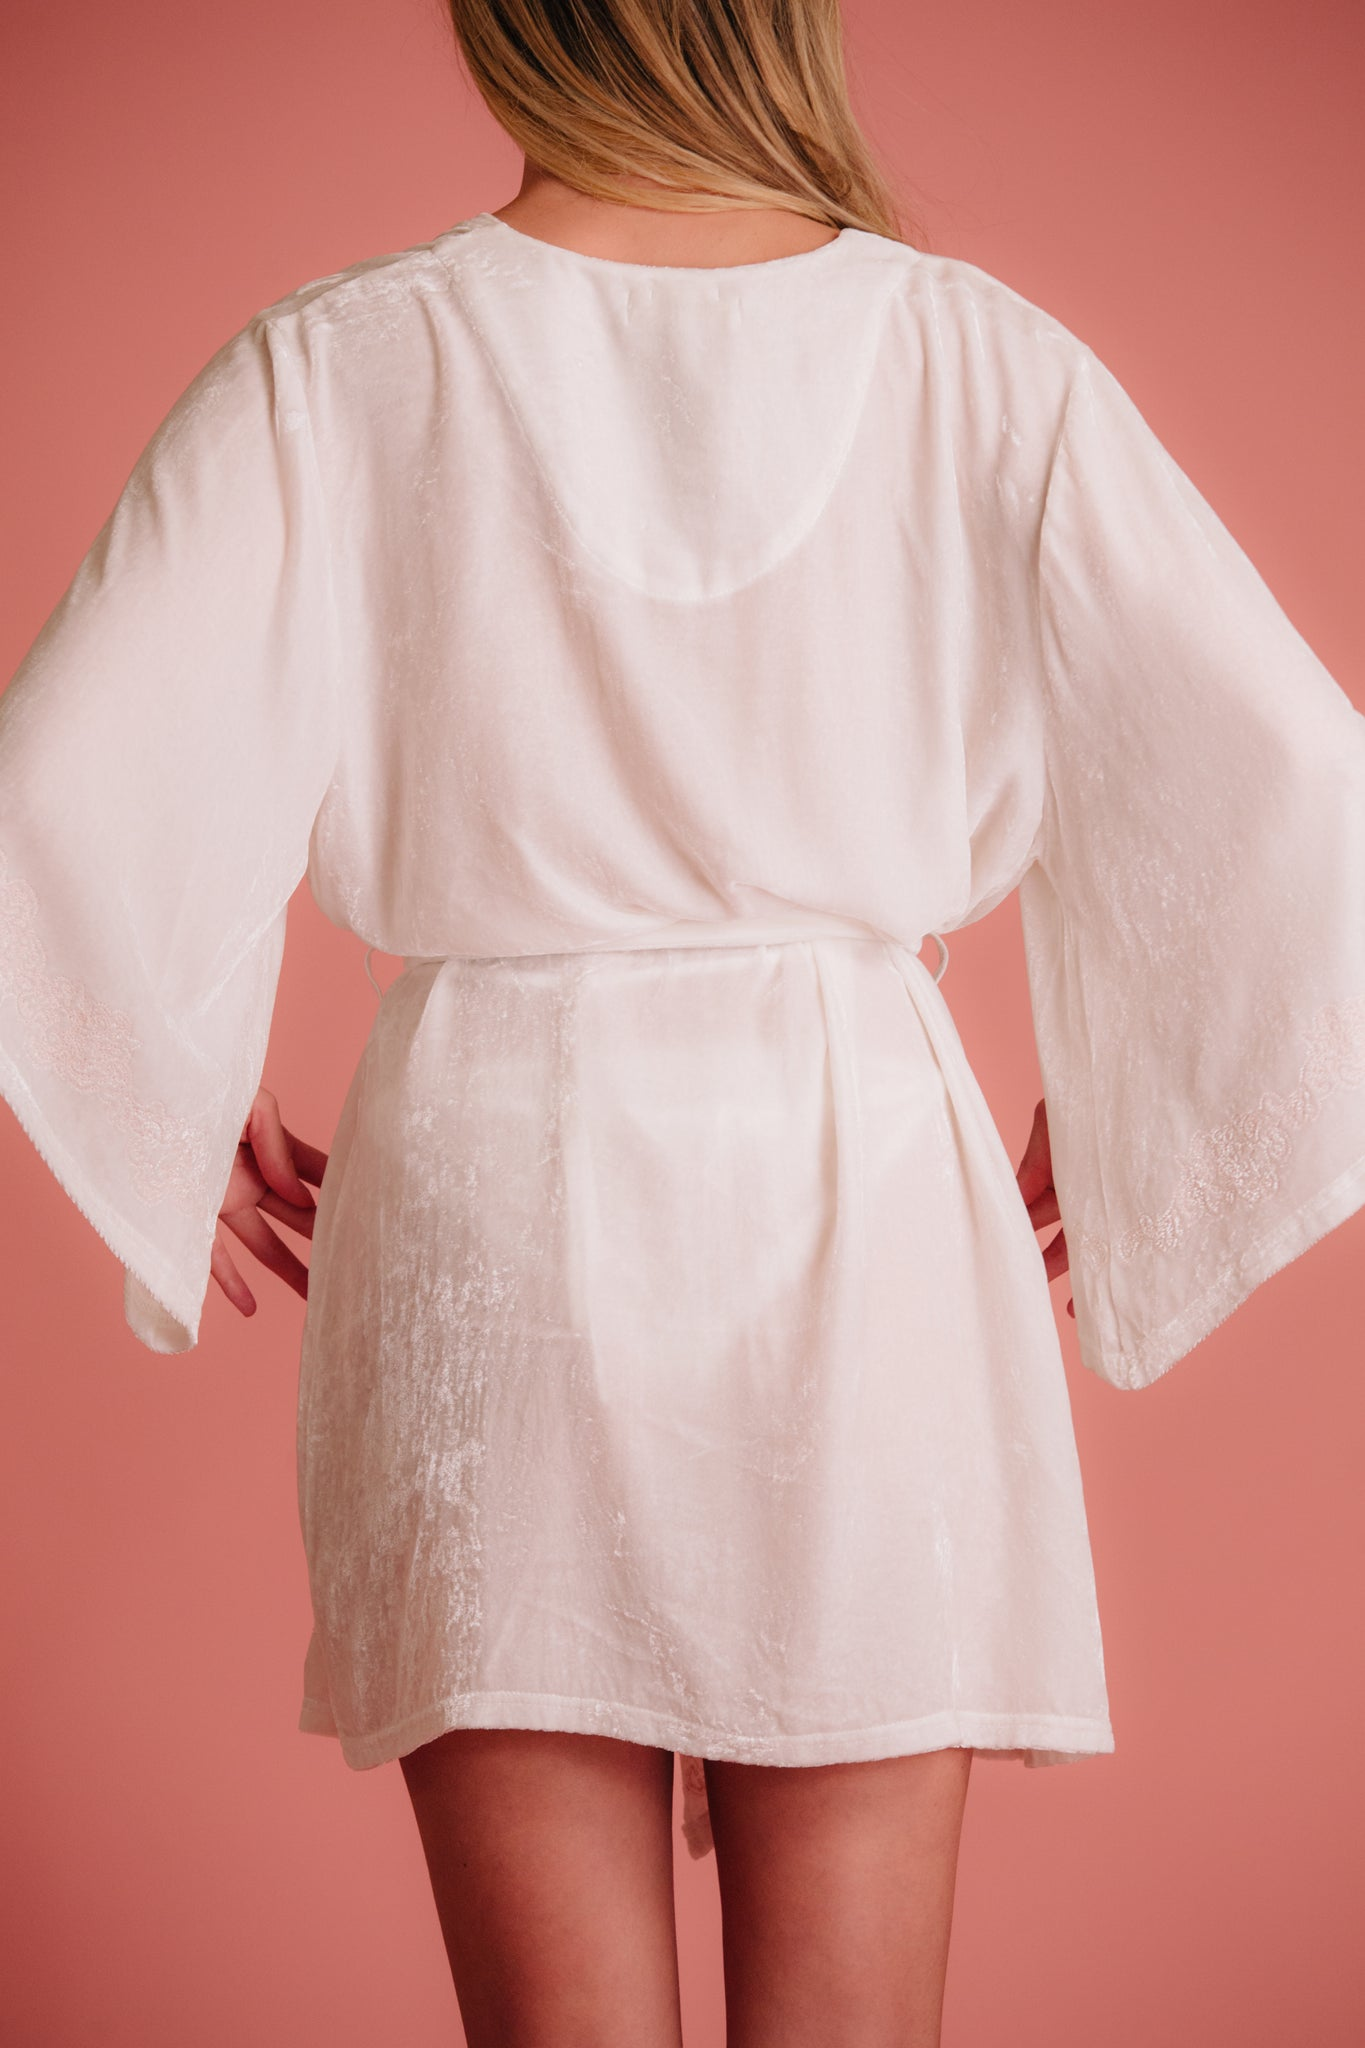 Wedding robe with pink paisley embroidery